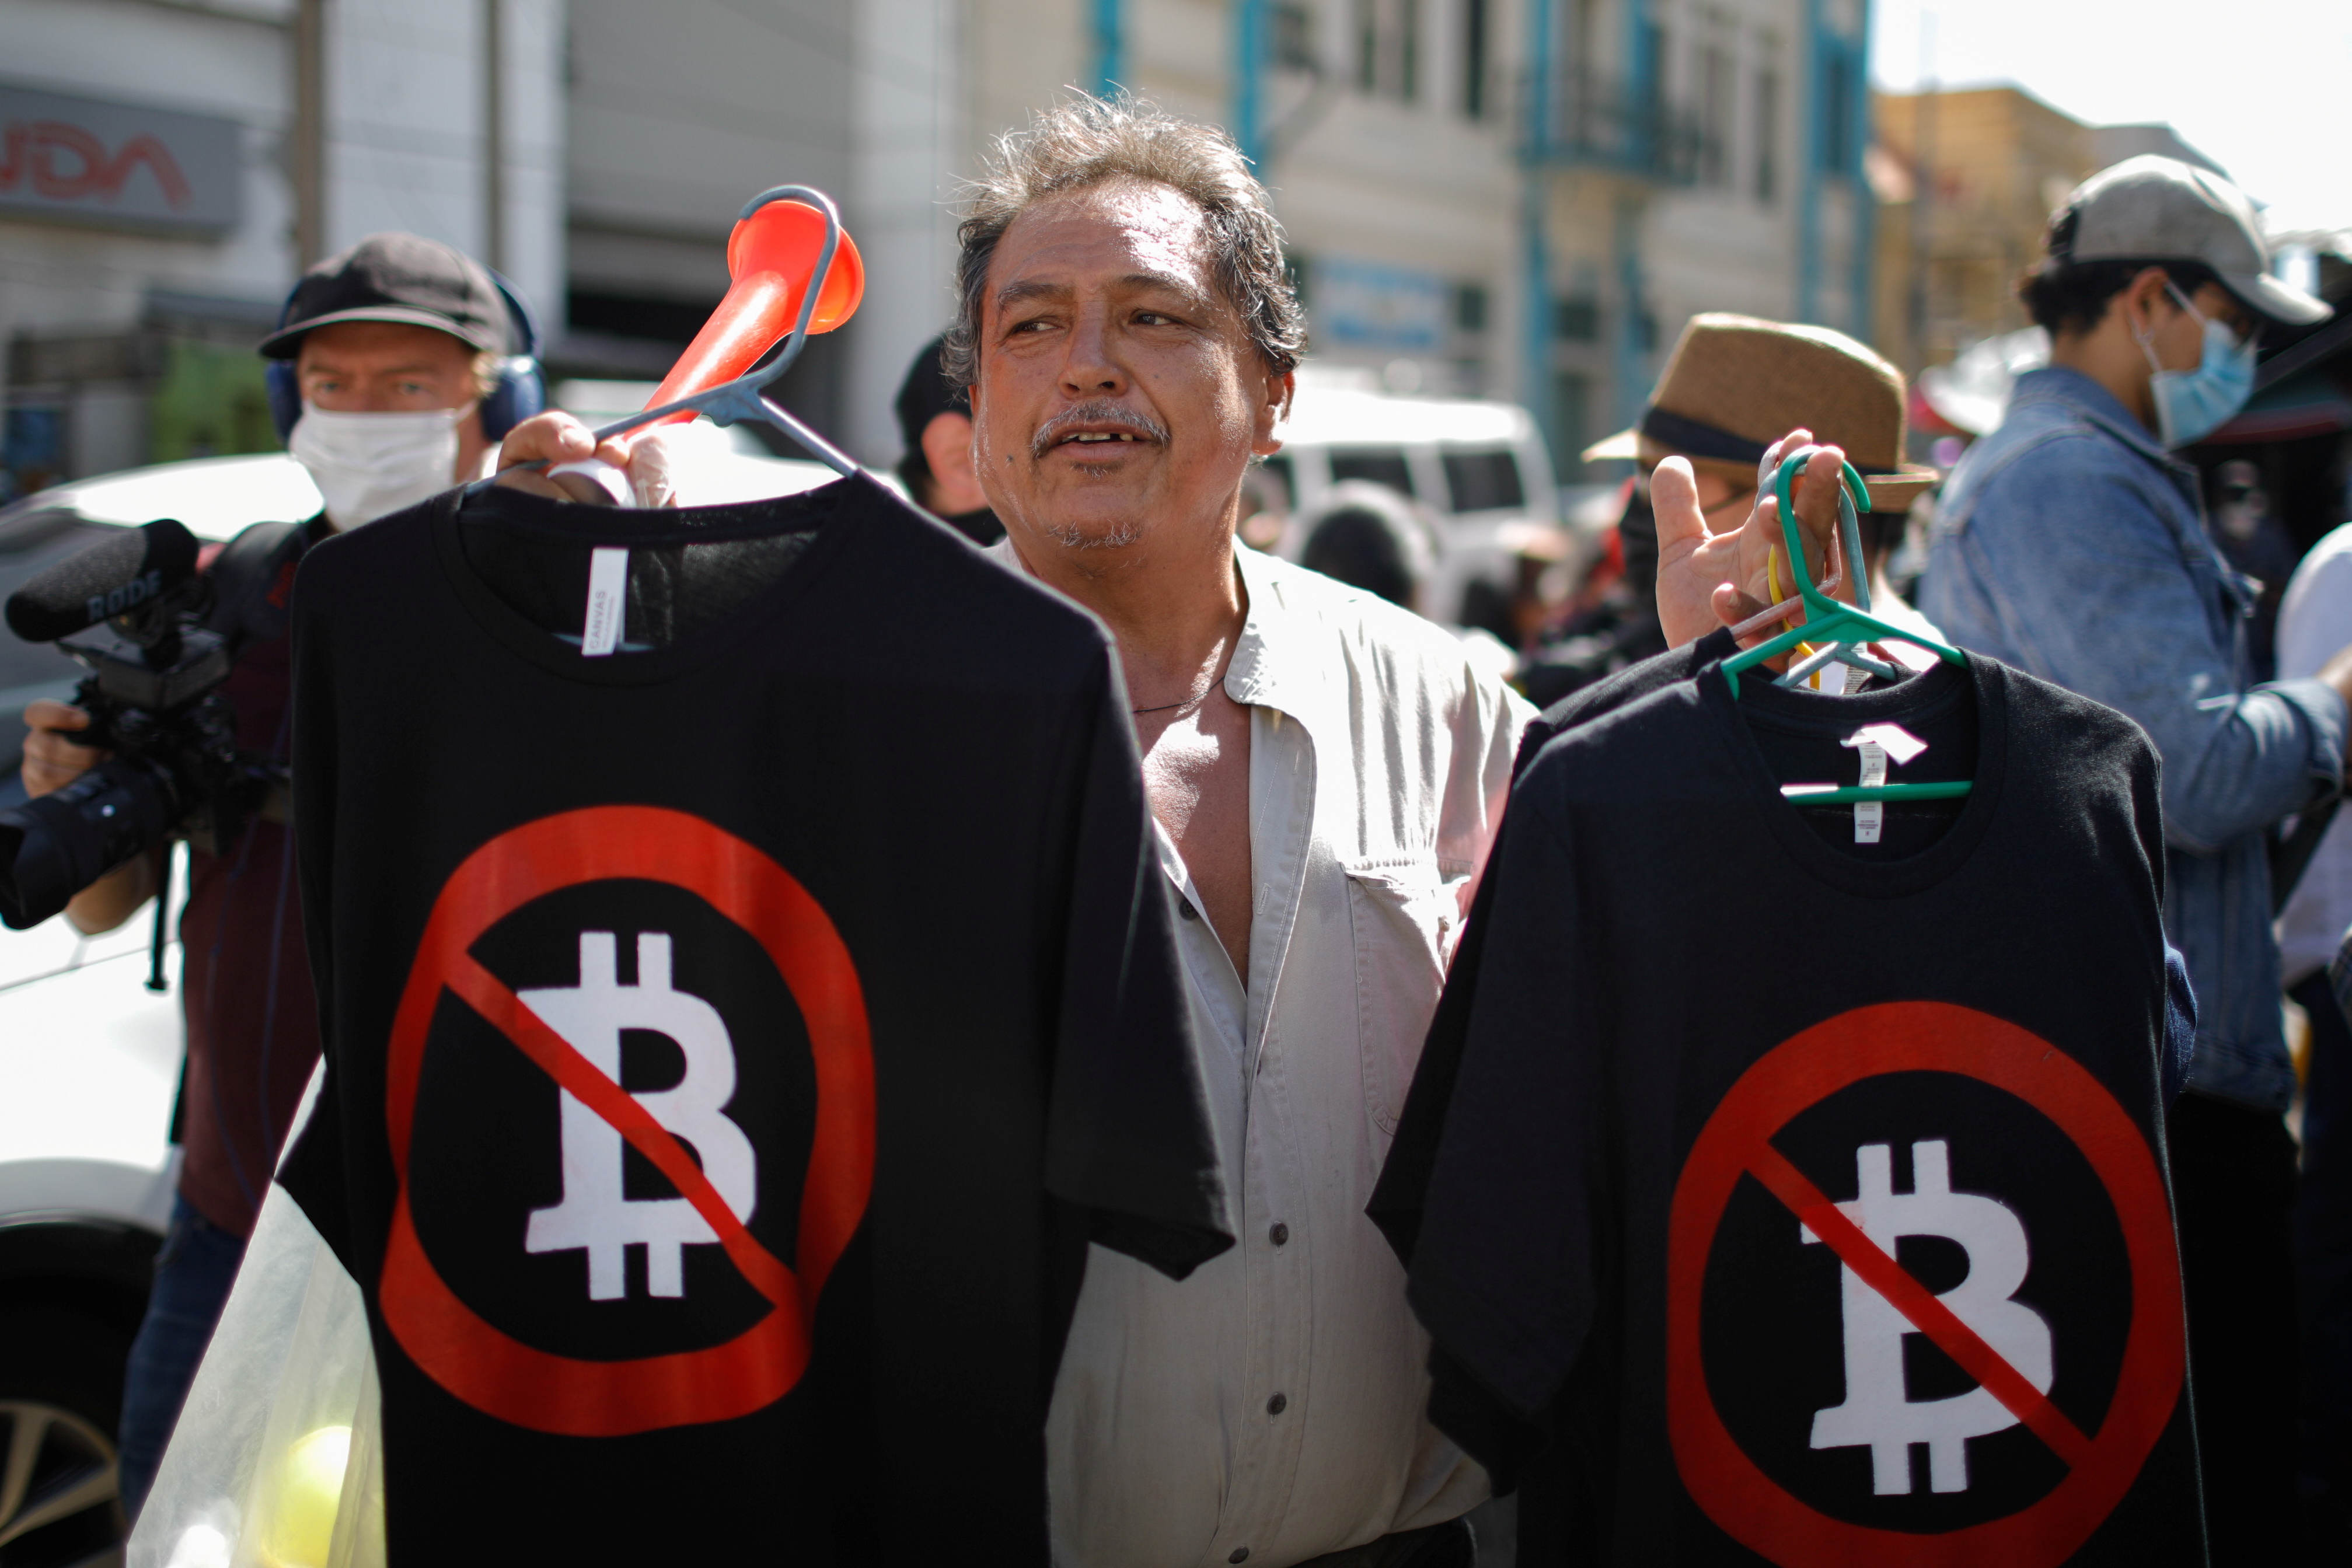 A man sells shirts as people participate in a protest against the use of Bitcoin as legal tender, in San Salvador, El Salvador, September 7, 2021. REUTERS/Jose Cabezas